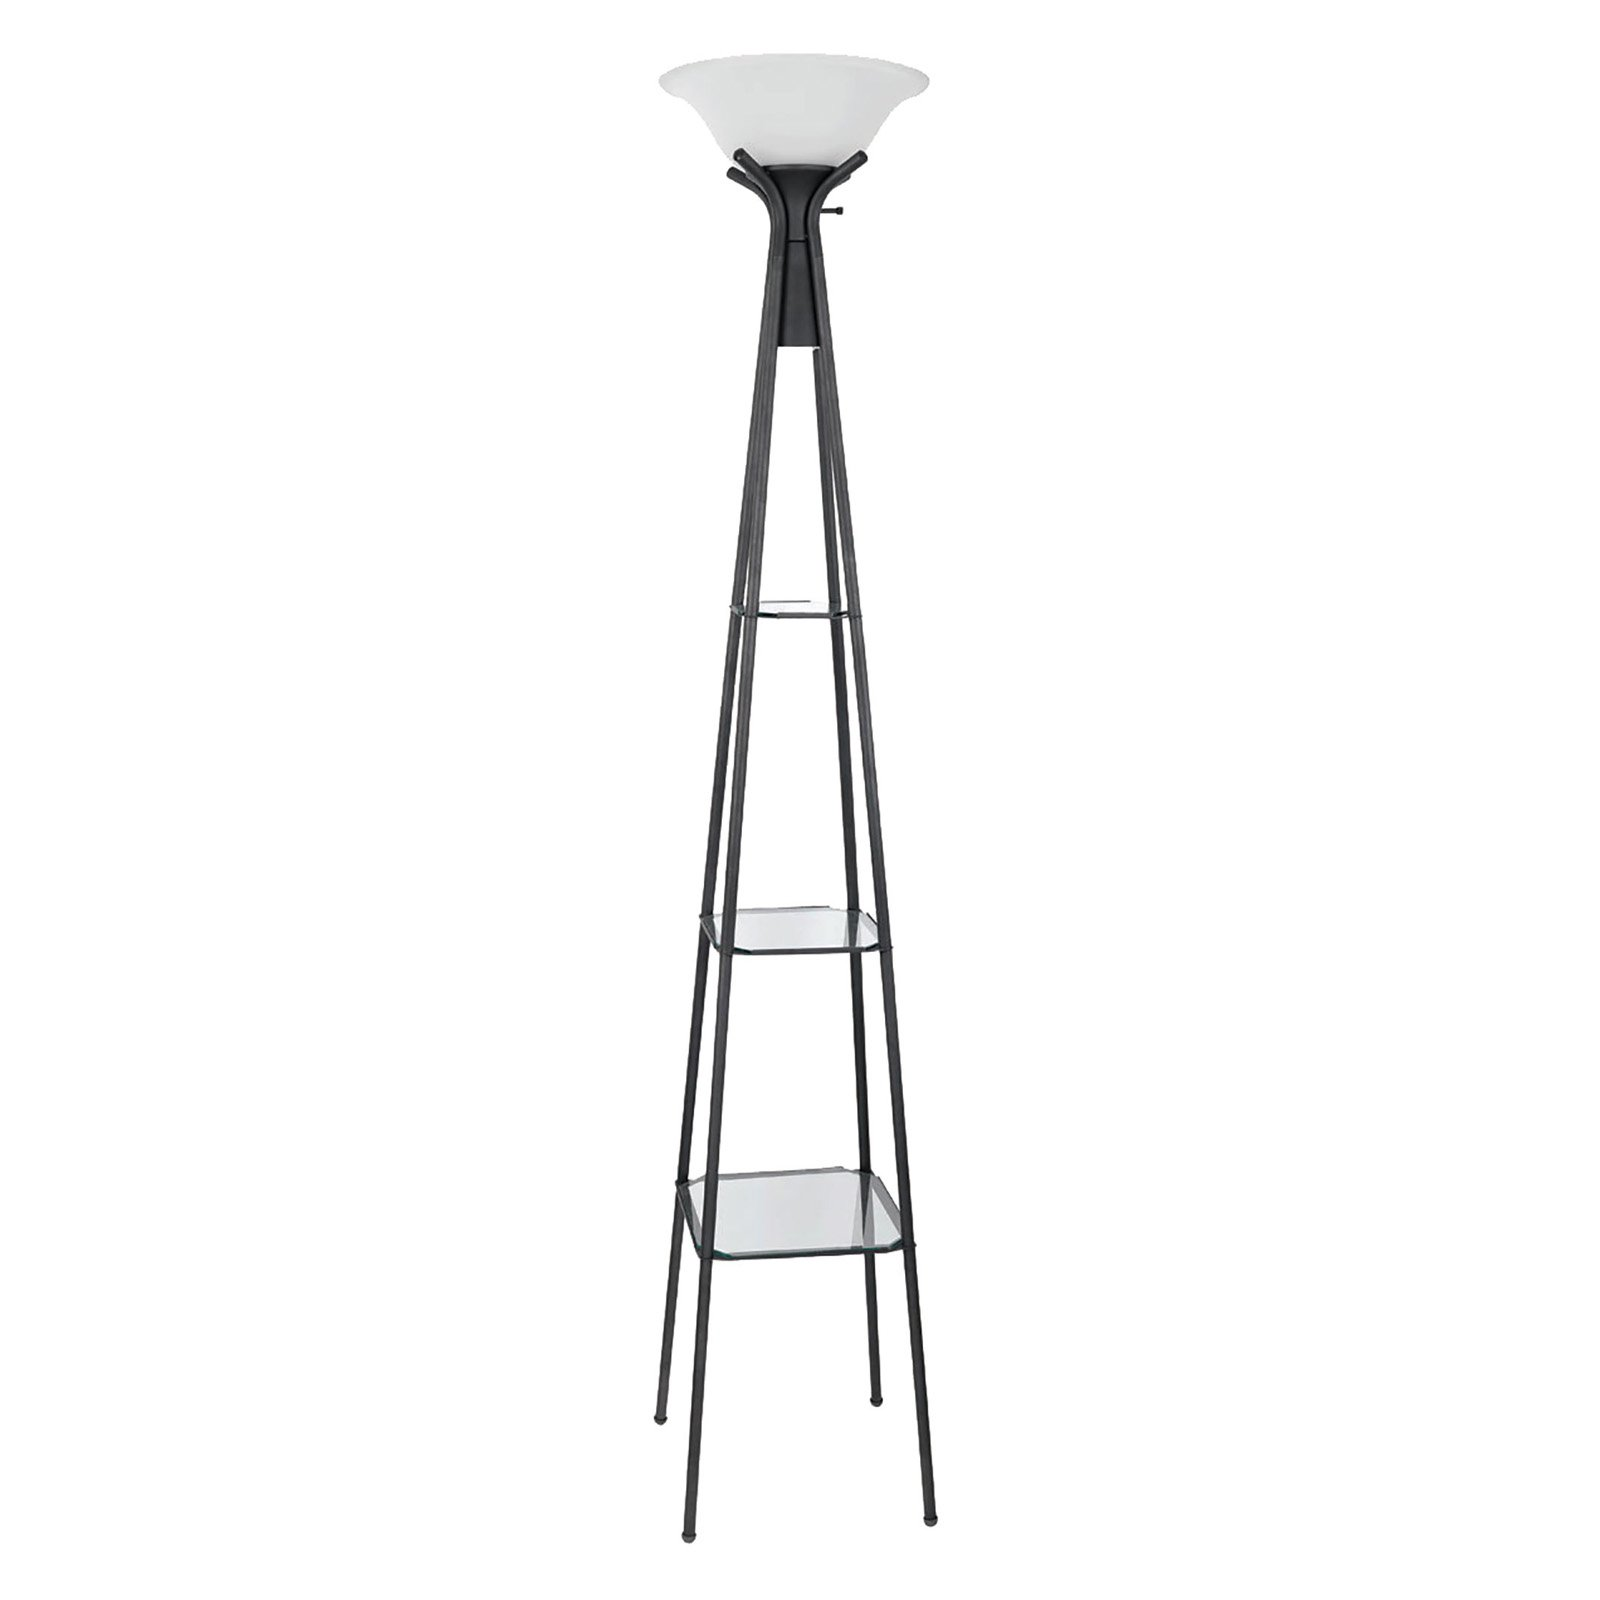 Coaster Company Floor Lamp, Charcoal Finish with Frosted Glass Shade by Coaster Company